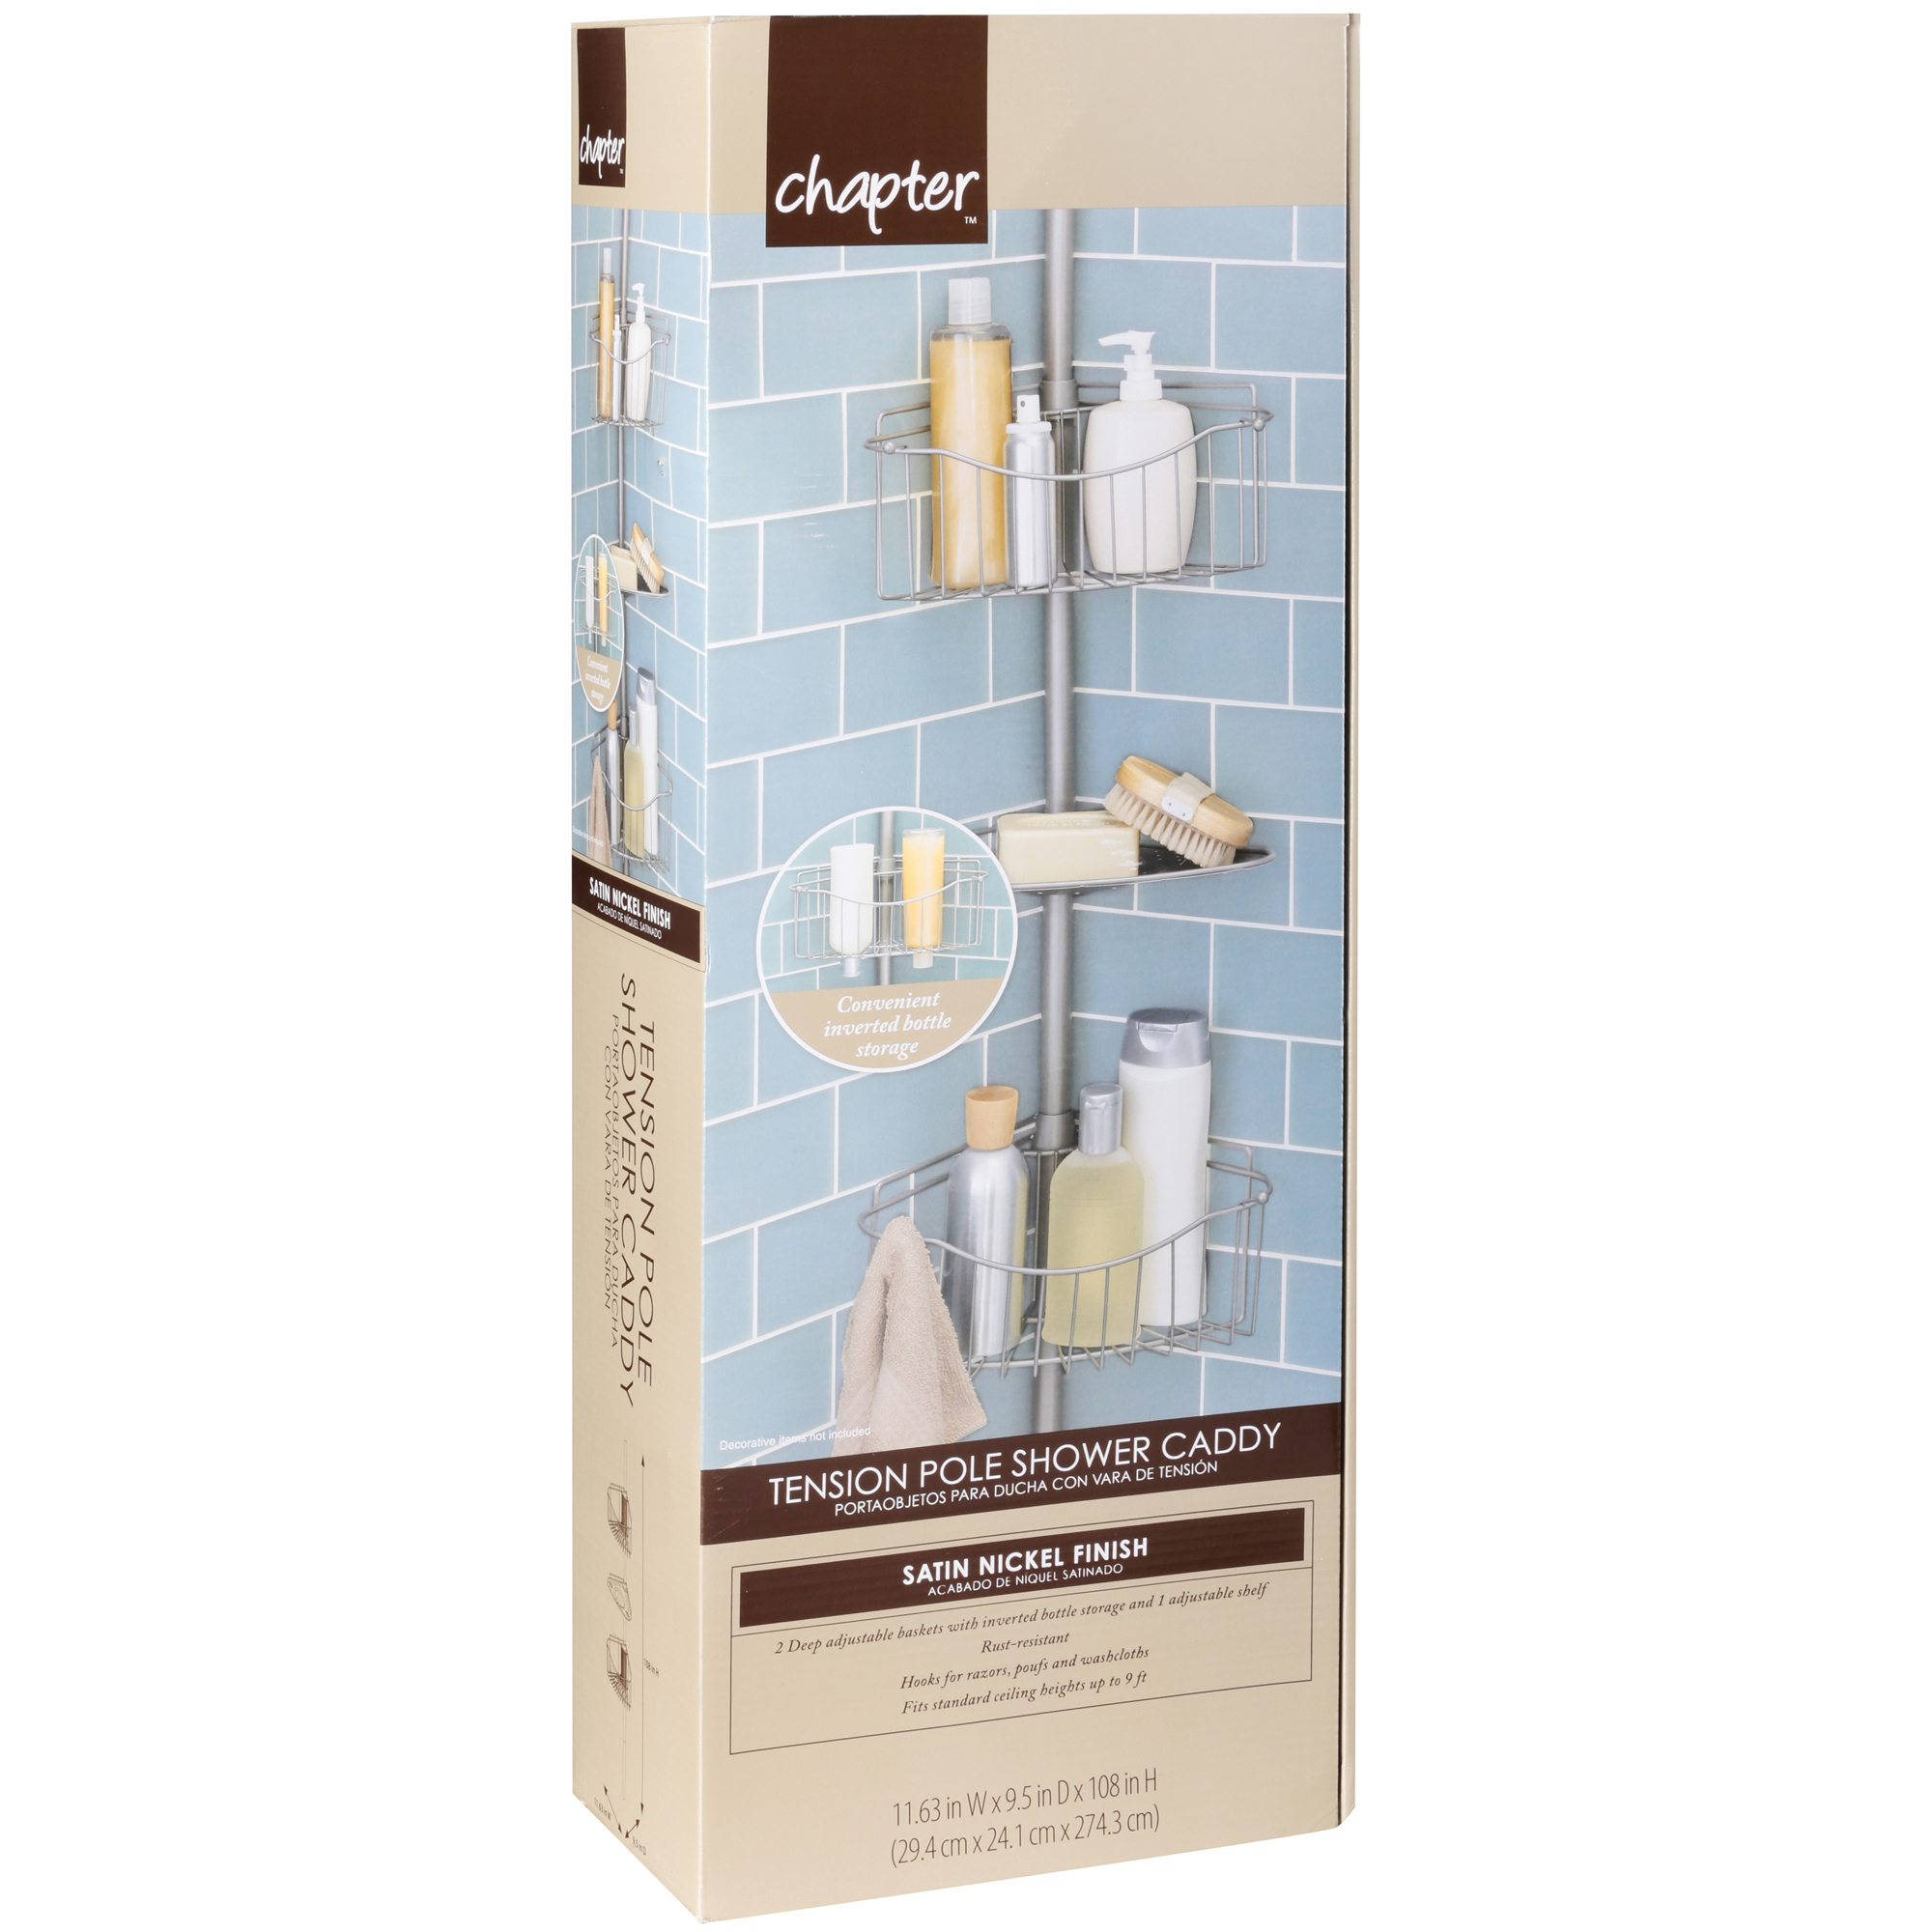 Chapter Tension Pole Shower Caddy, Satin Nickel - Walmart.com